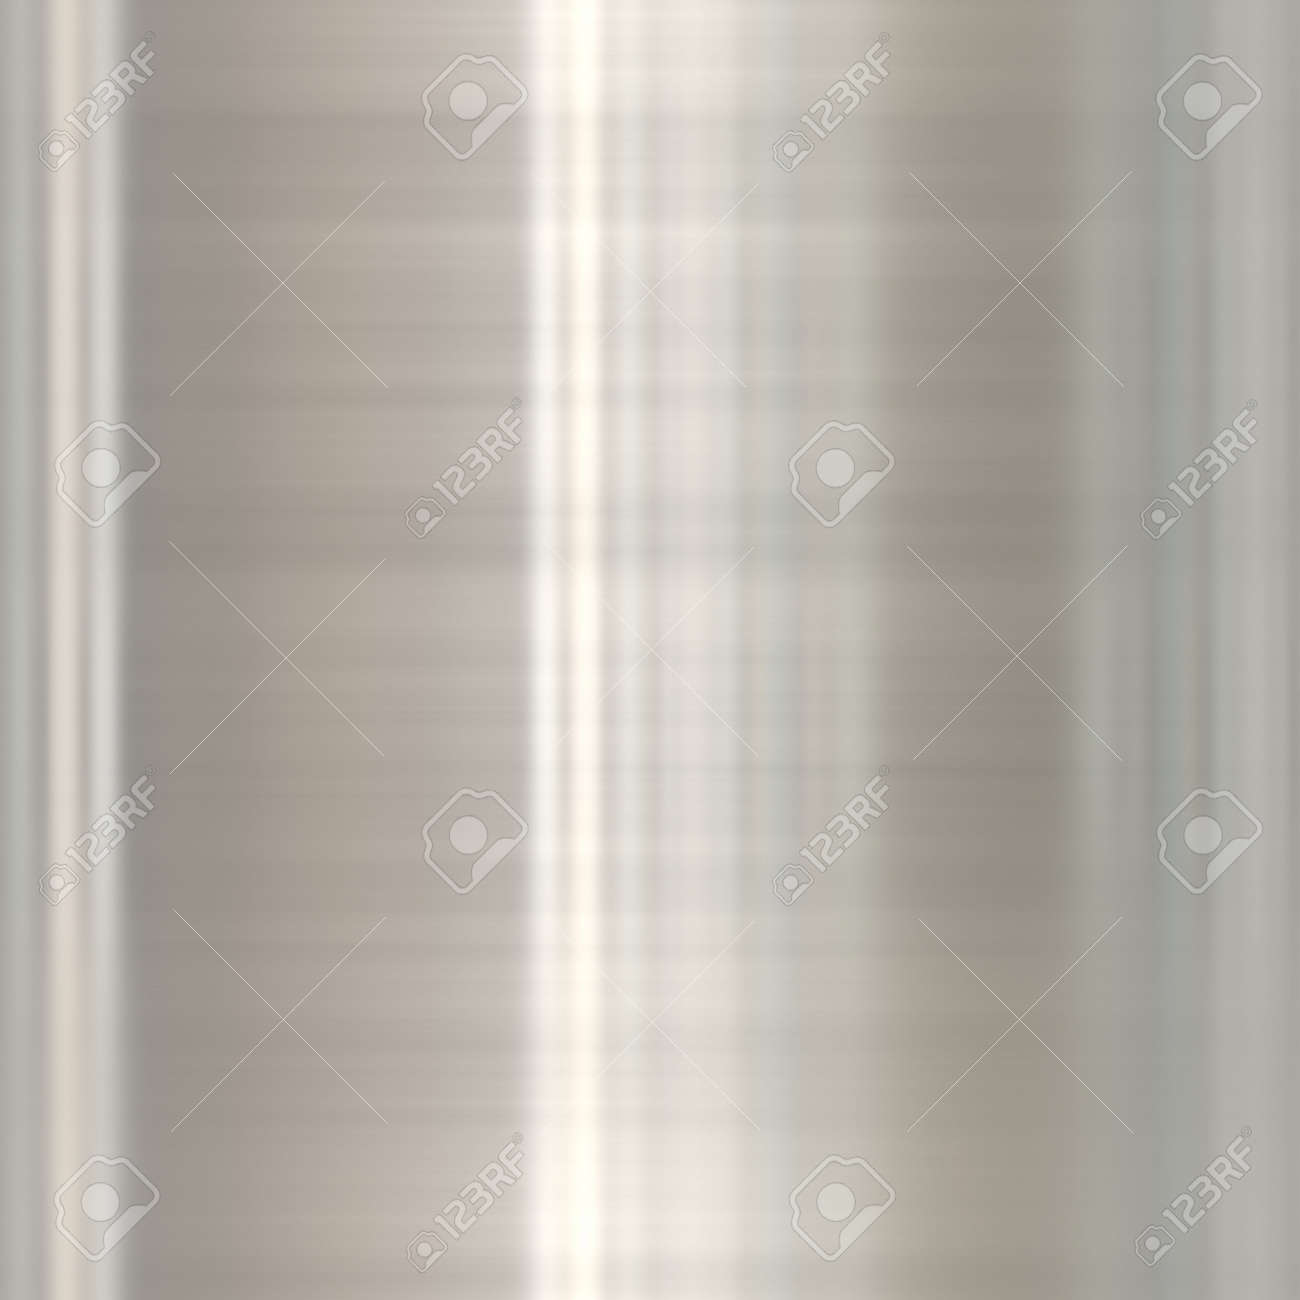 brushed silver aluminum with highlights, seamlessly tillable Stock Photo - 3822797